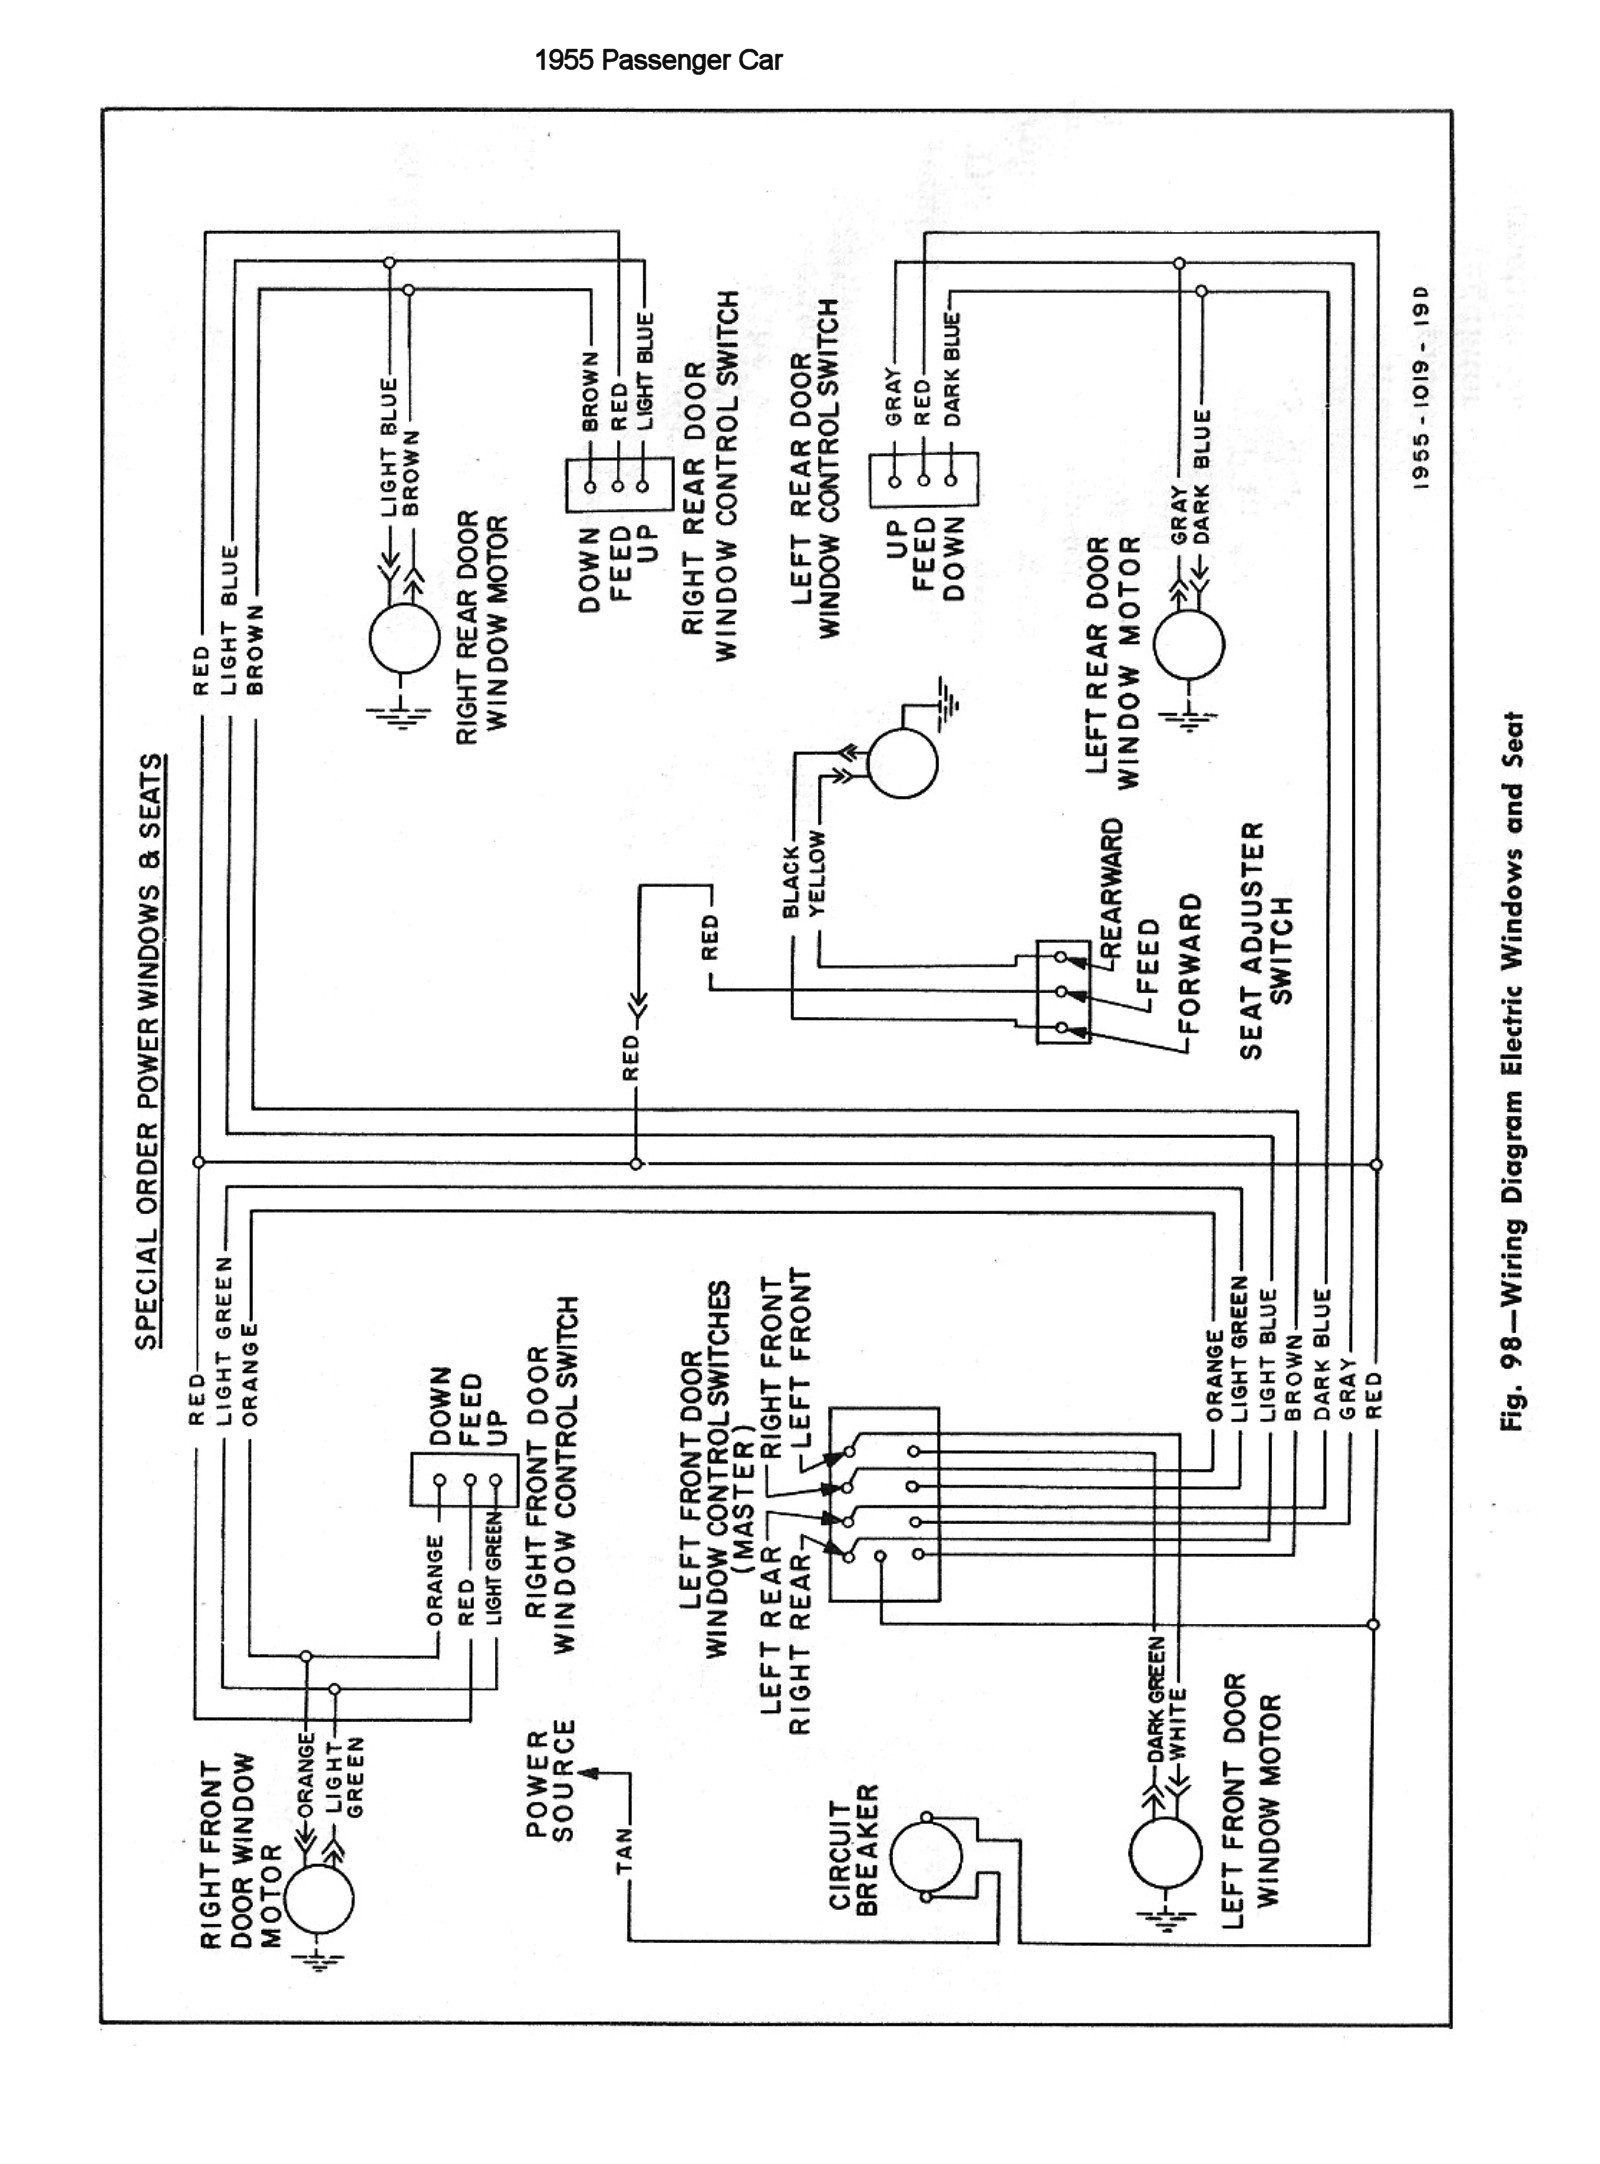 1955 chevy turn signal wiring diagram wiringdiagram org light switch wiring diagram chev car [ 1600 x 2164 Pixel ]